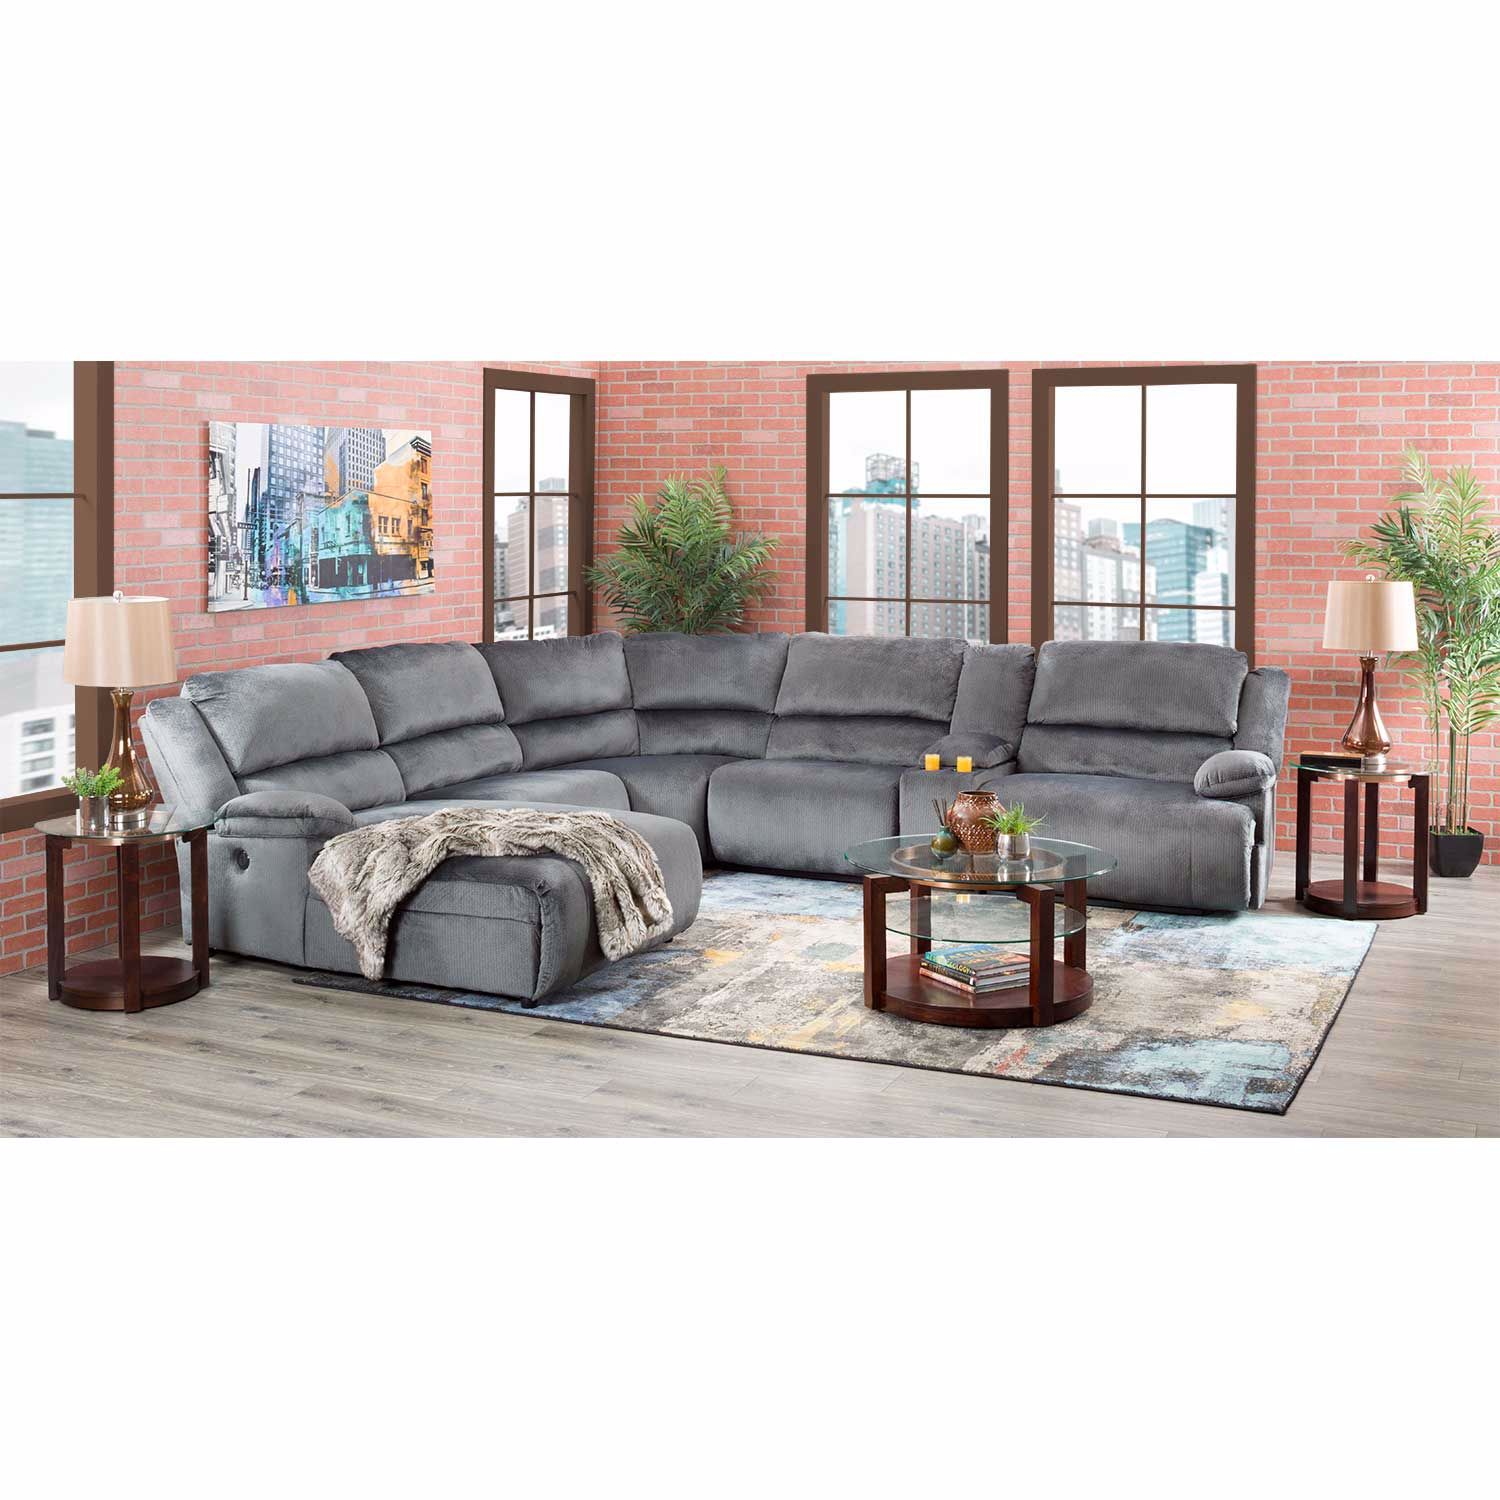 Picture of Clonmel 6 Piece Reclining Sectional with RAF Chaise